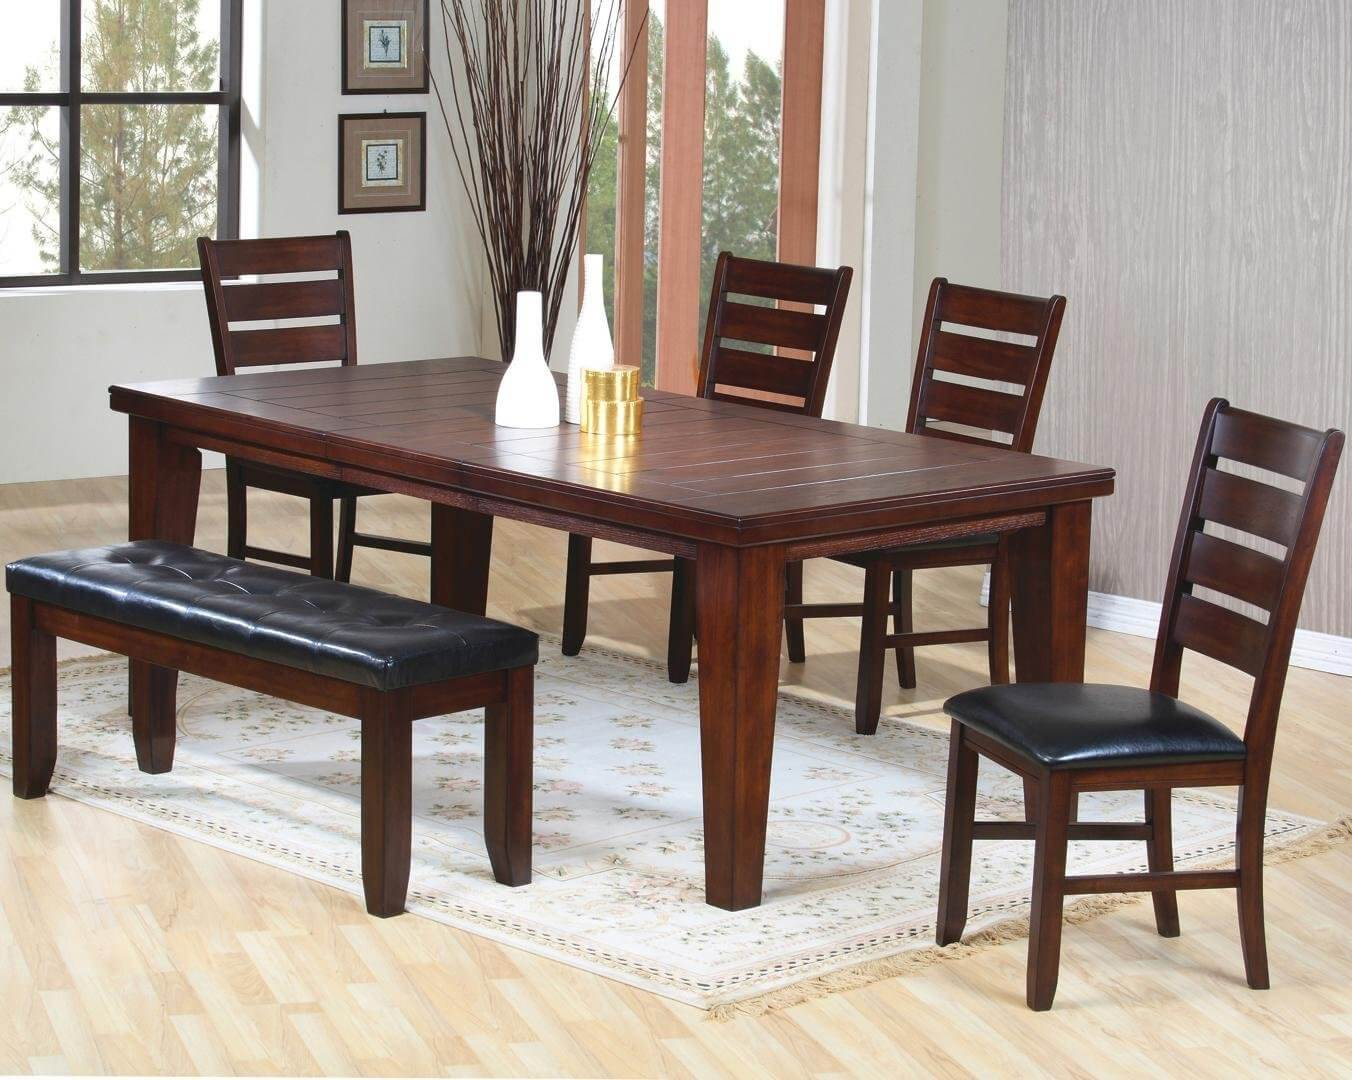 26 Dining Room Sets  Big and Small  with Bench Seating  2018  26 Dining Room Furniture Sets with a Bench